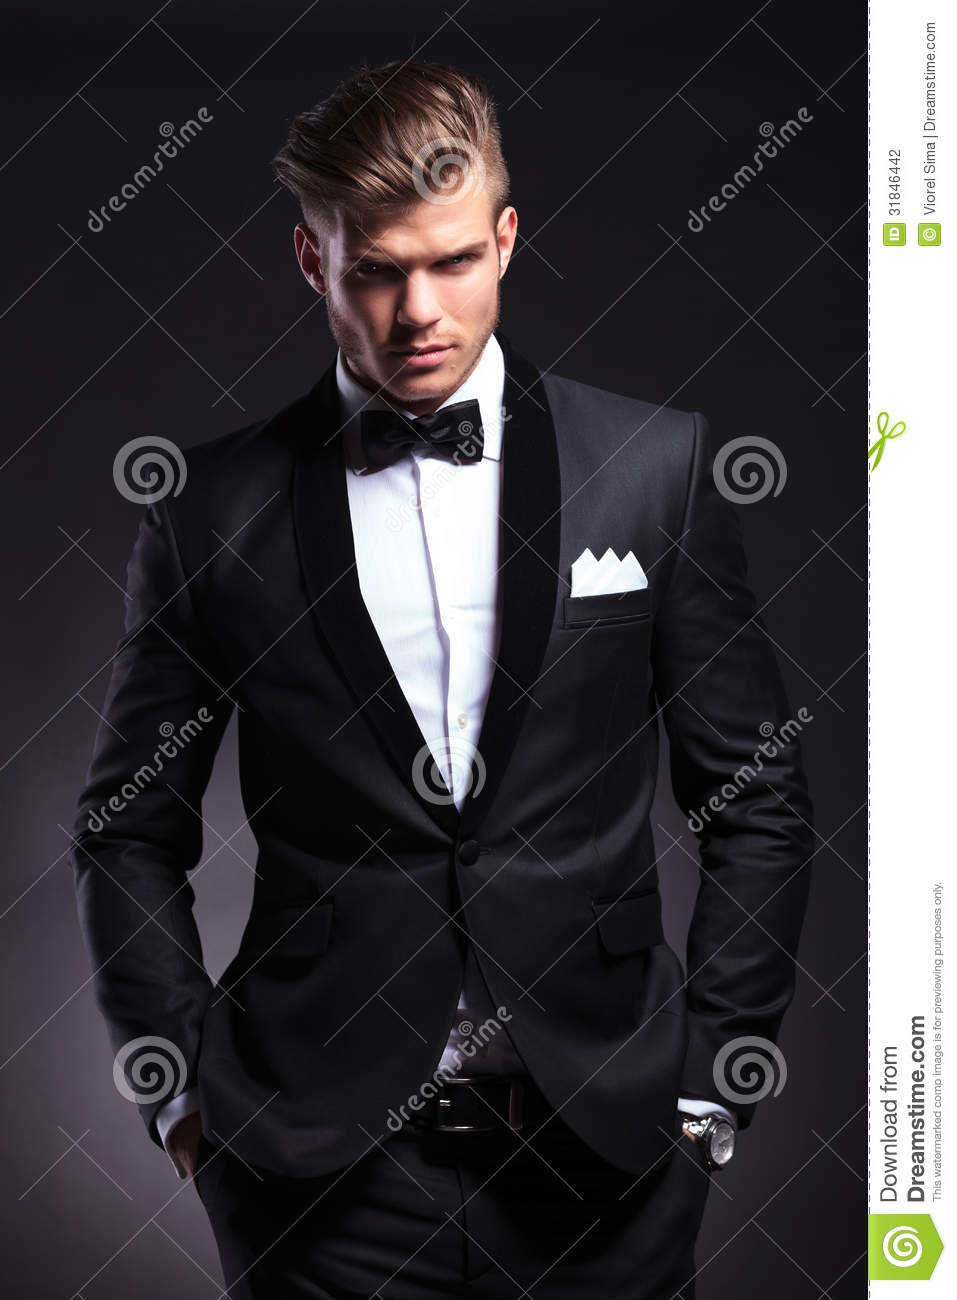 Business man holds both hands in pockets